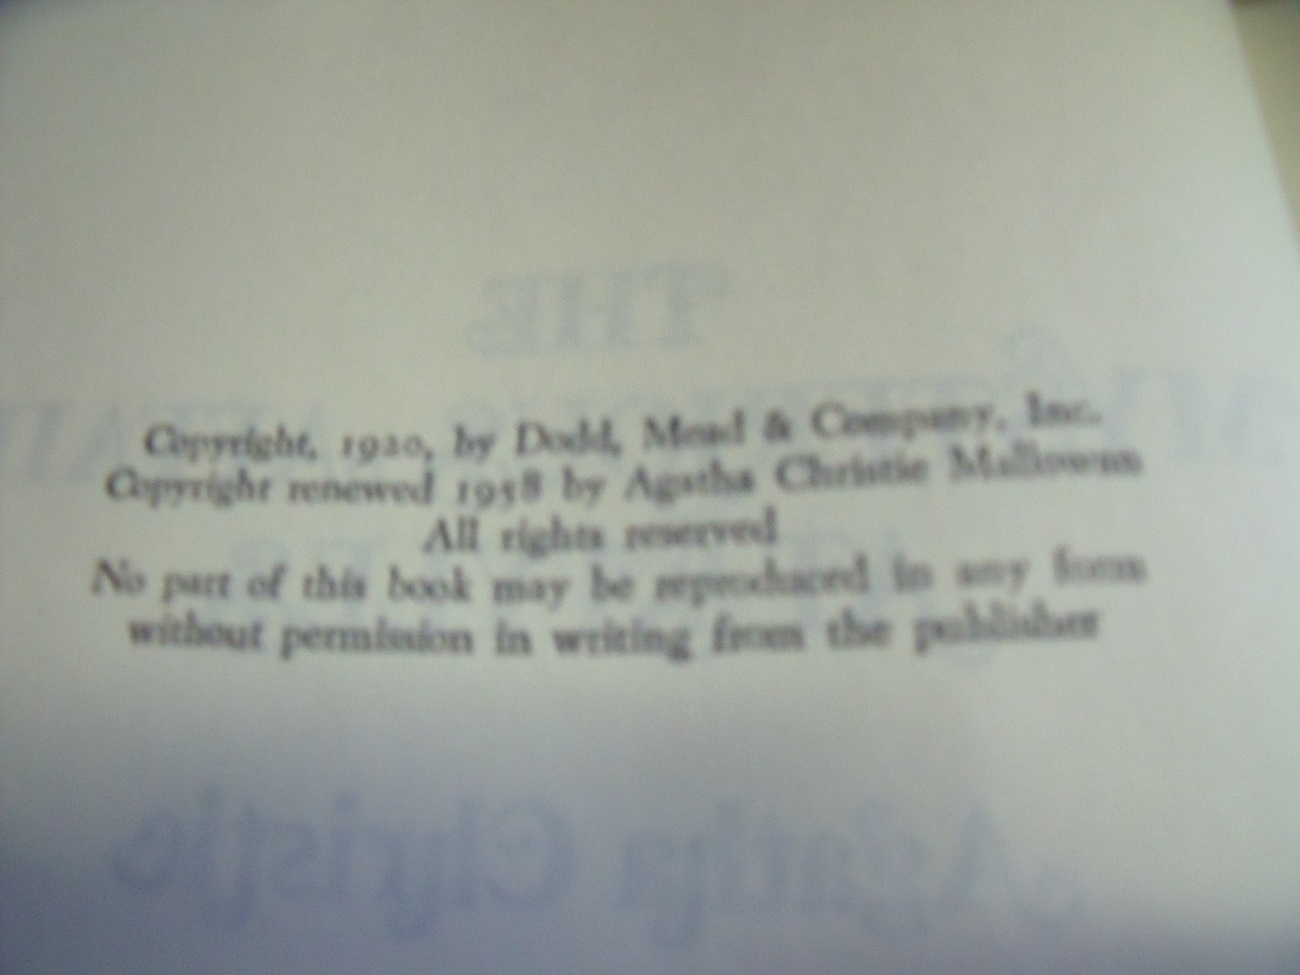 The Mysterious Affair at Styles by Agatha Christie commemorative edition 1975